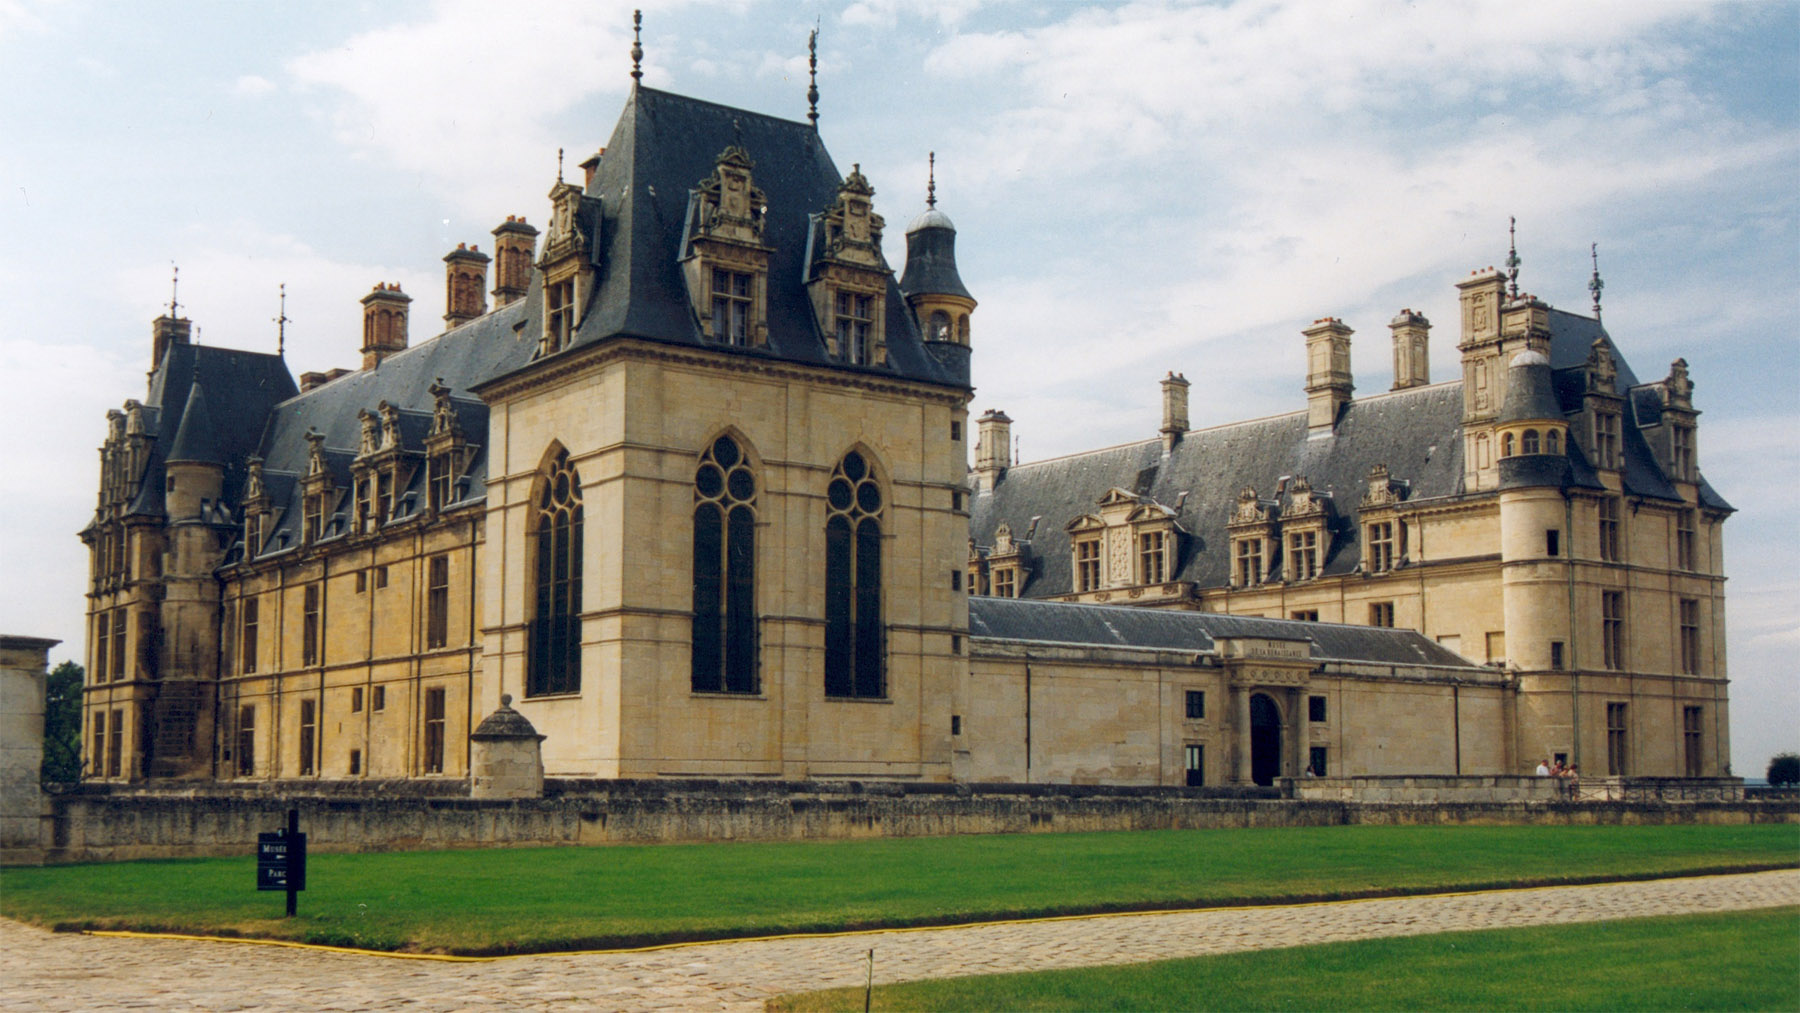 Ecouen France  City new picture : Ecouen Chateau 01 Wikimedia Commons